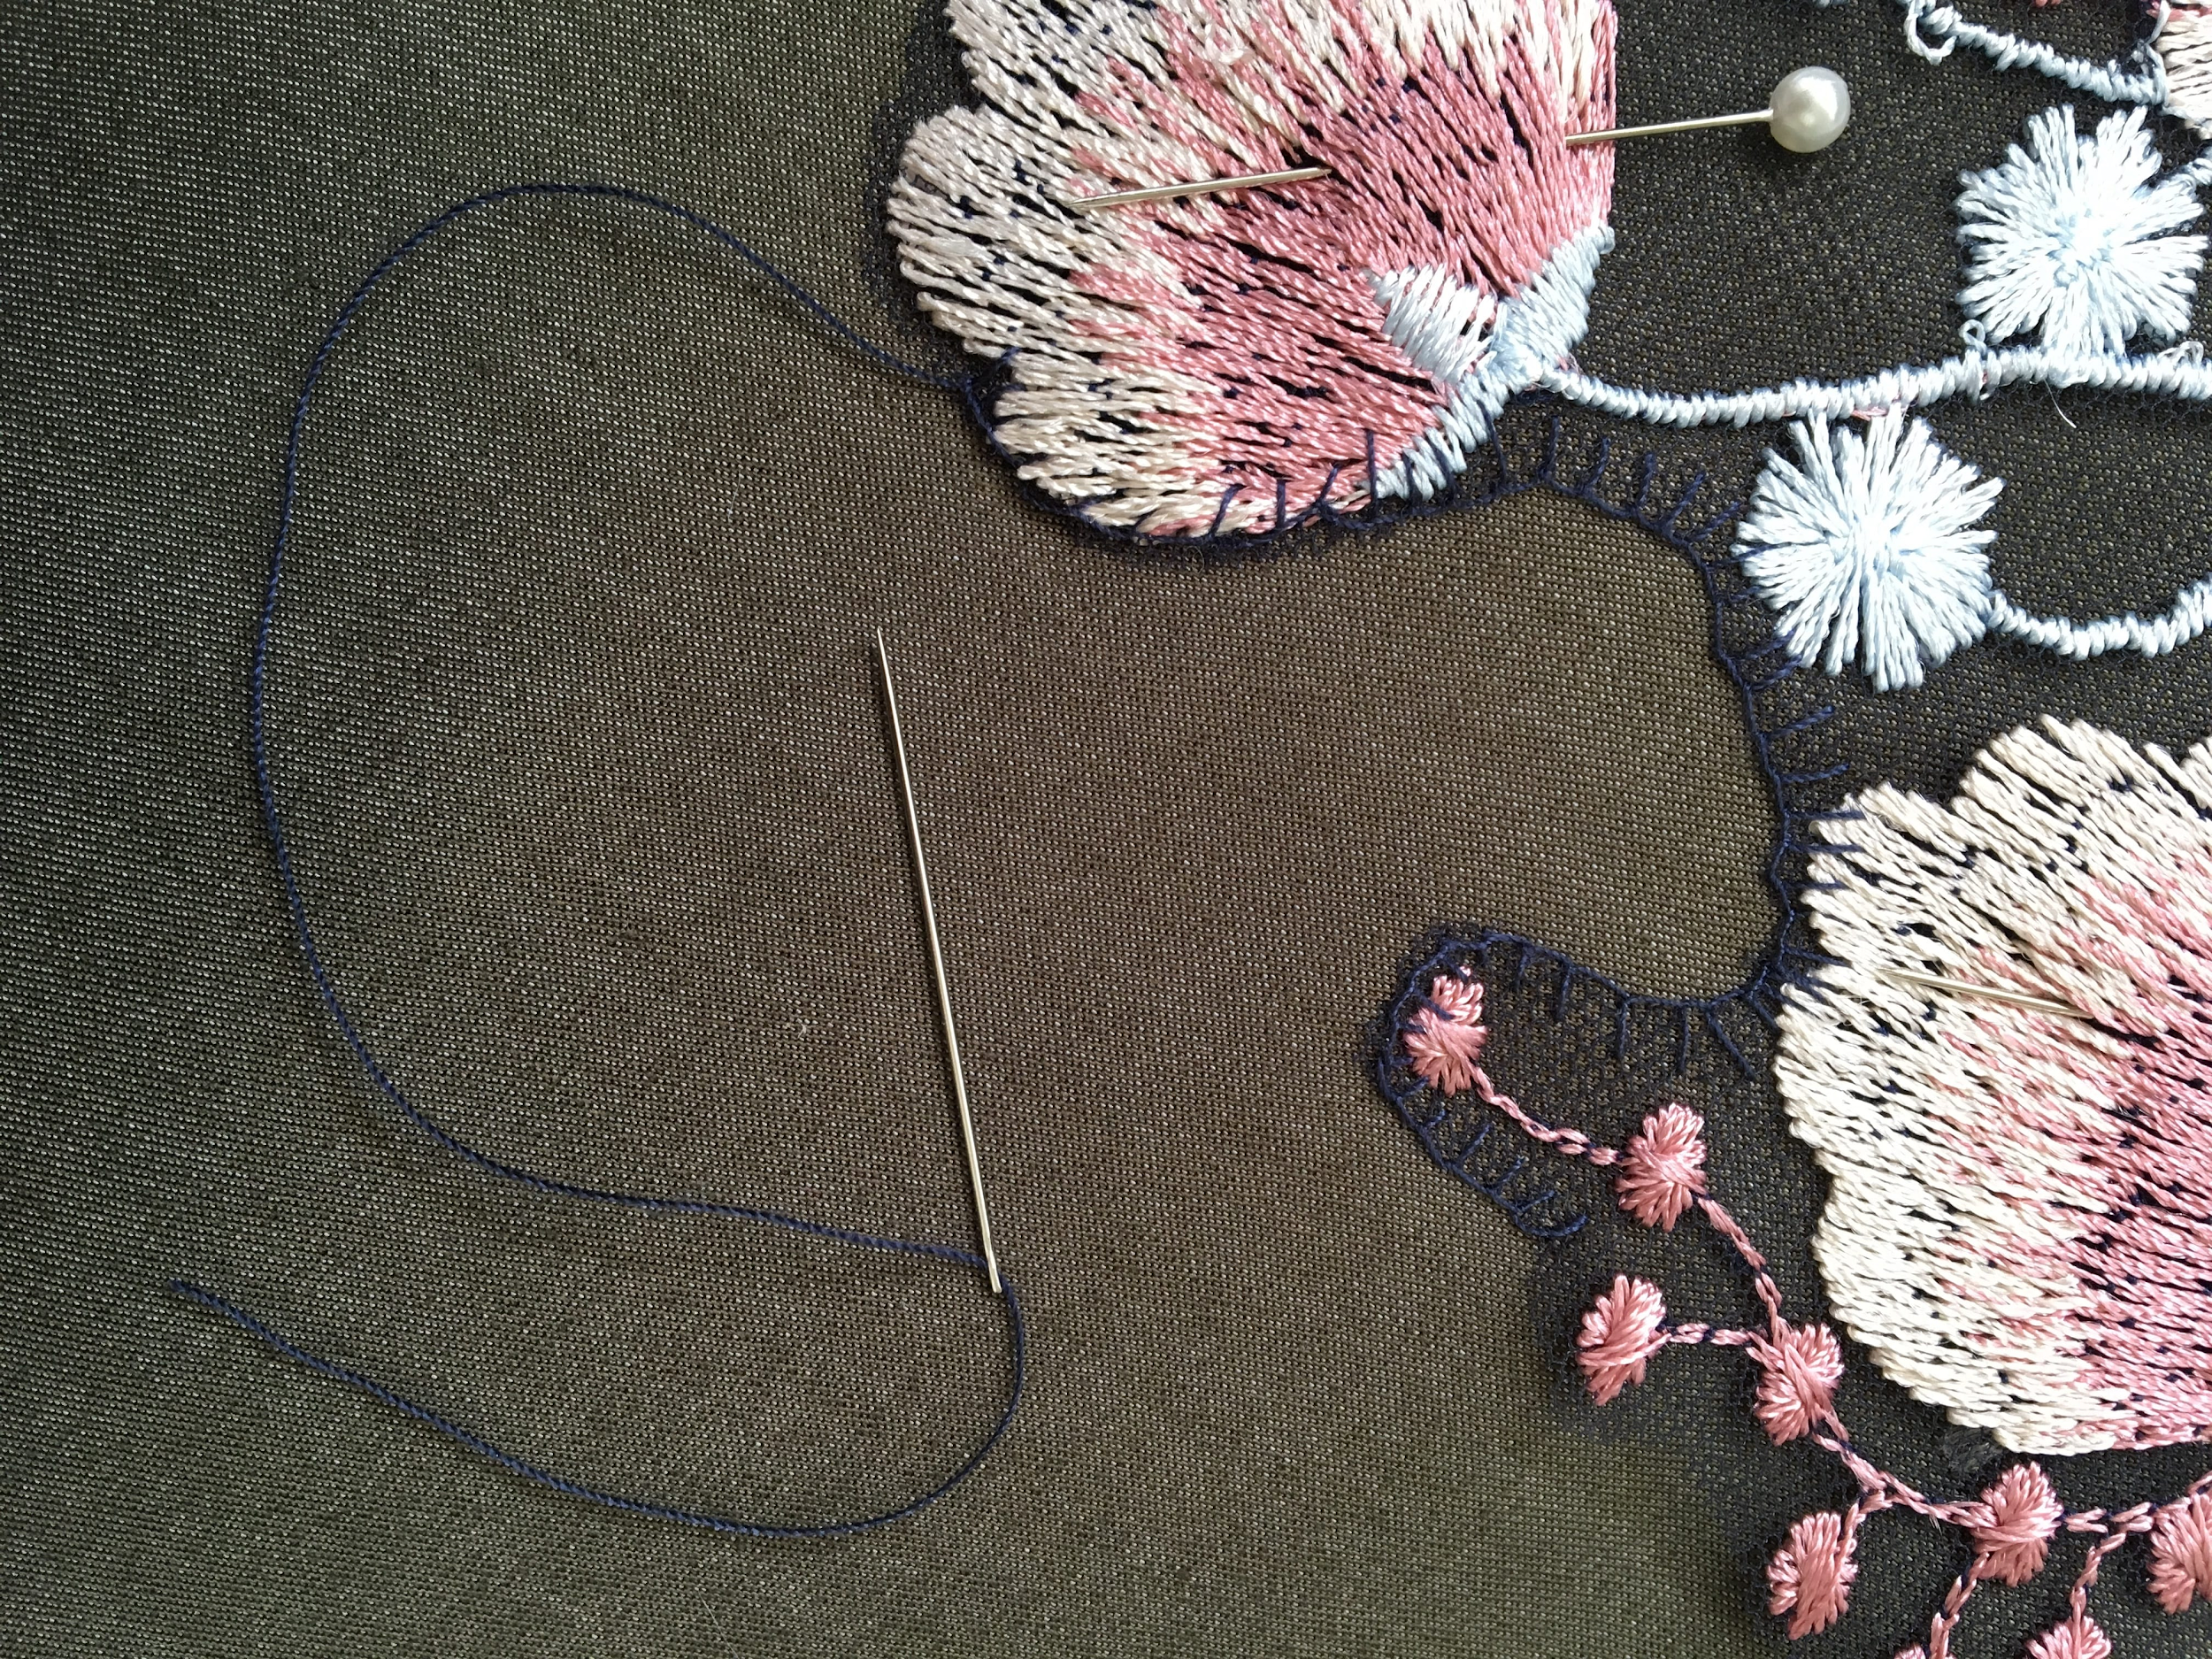 Sewing Appliques